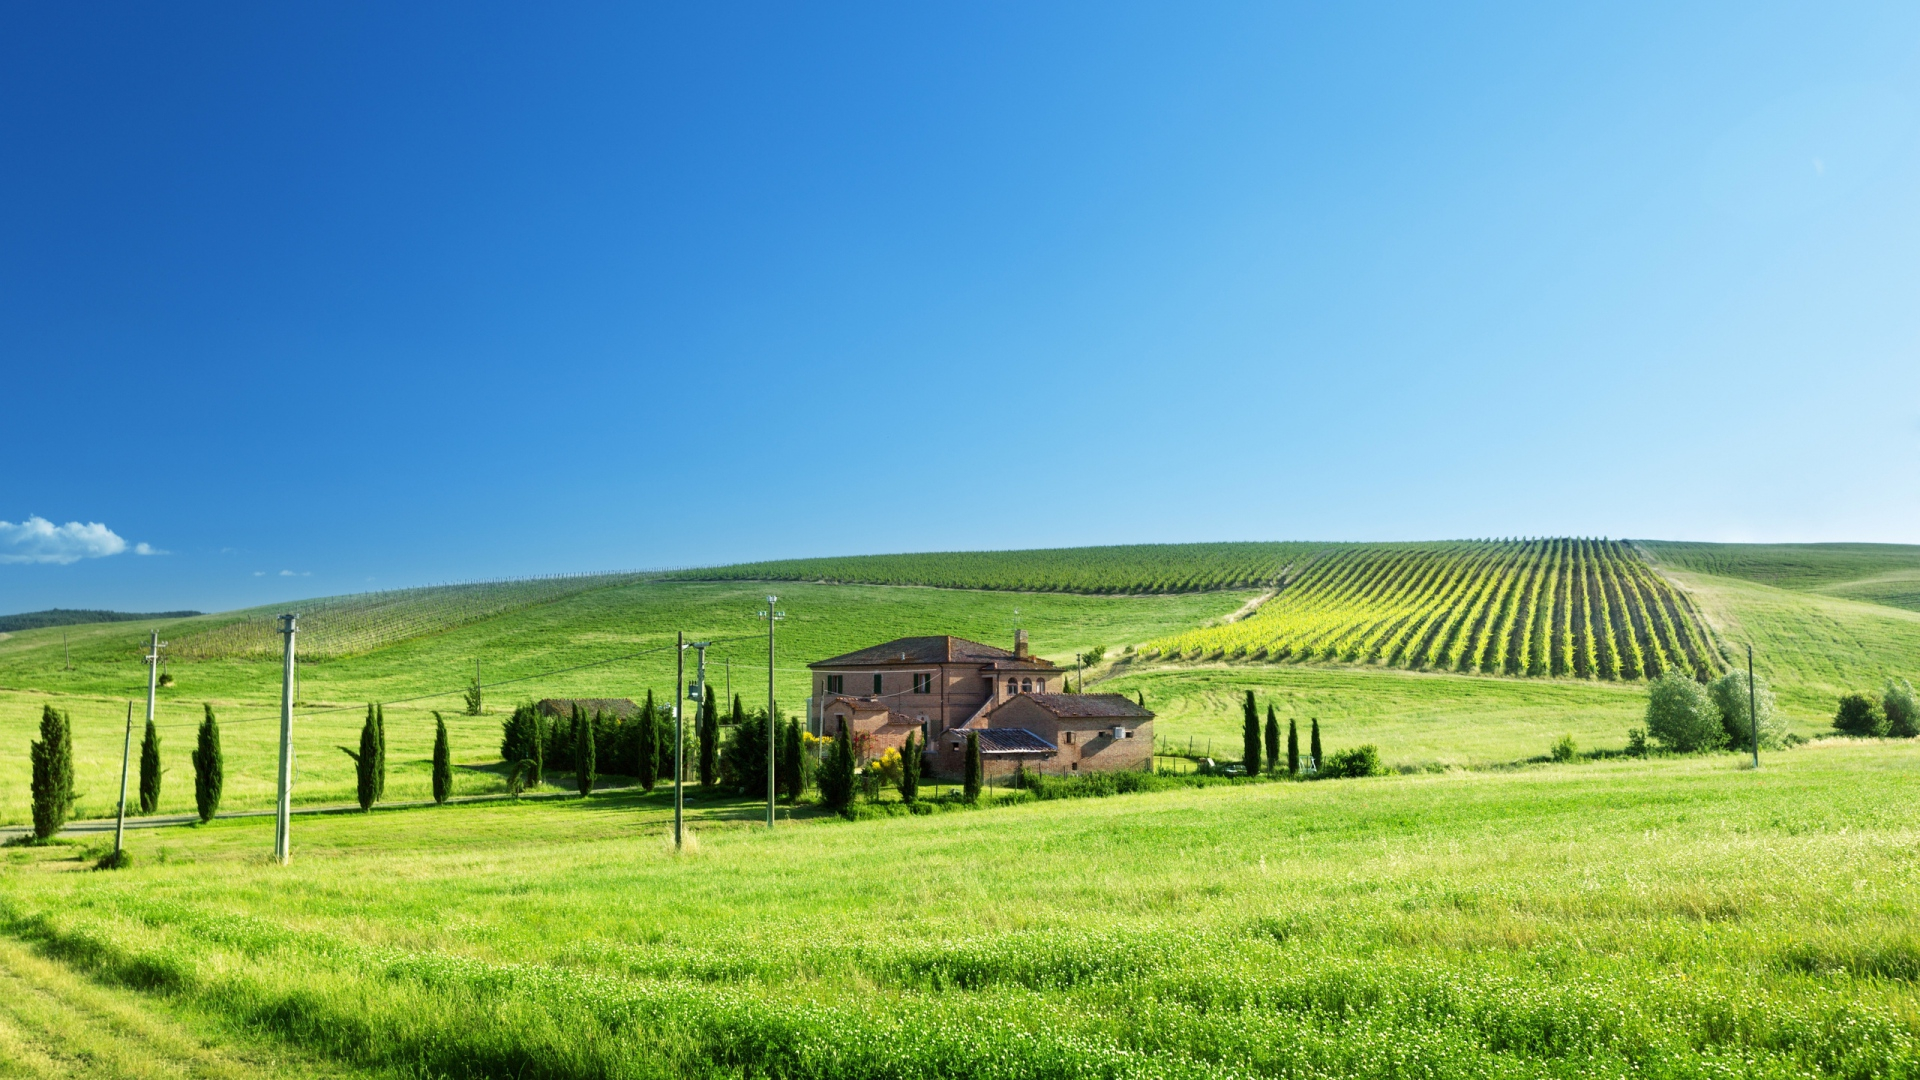 farms-tuscan-farm-bright-summer-day-hills-fields-sky-wallpaper-background-free